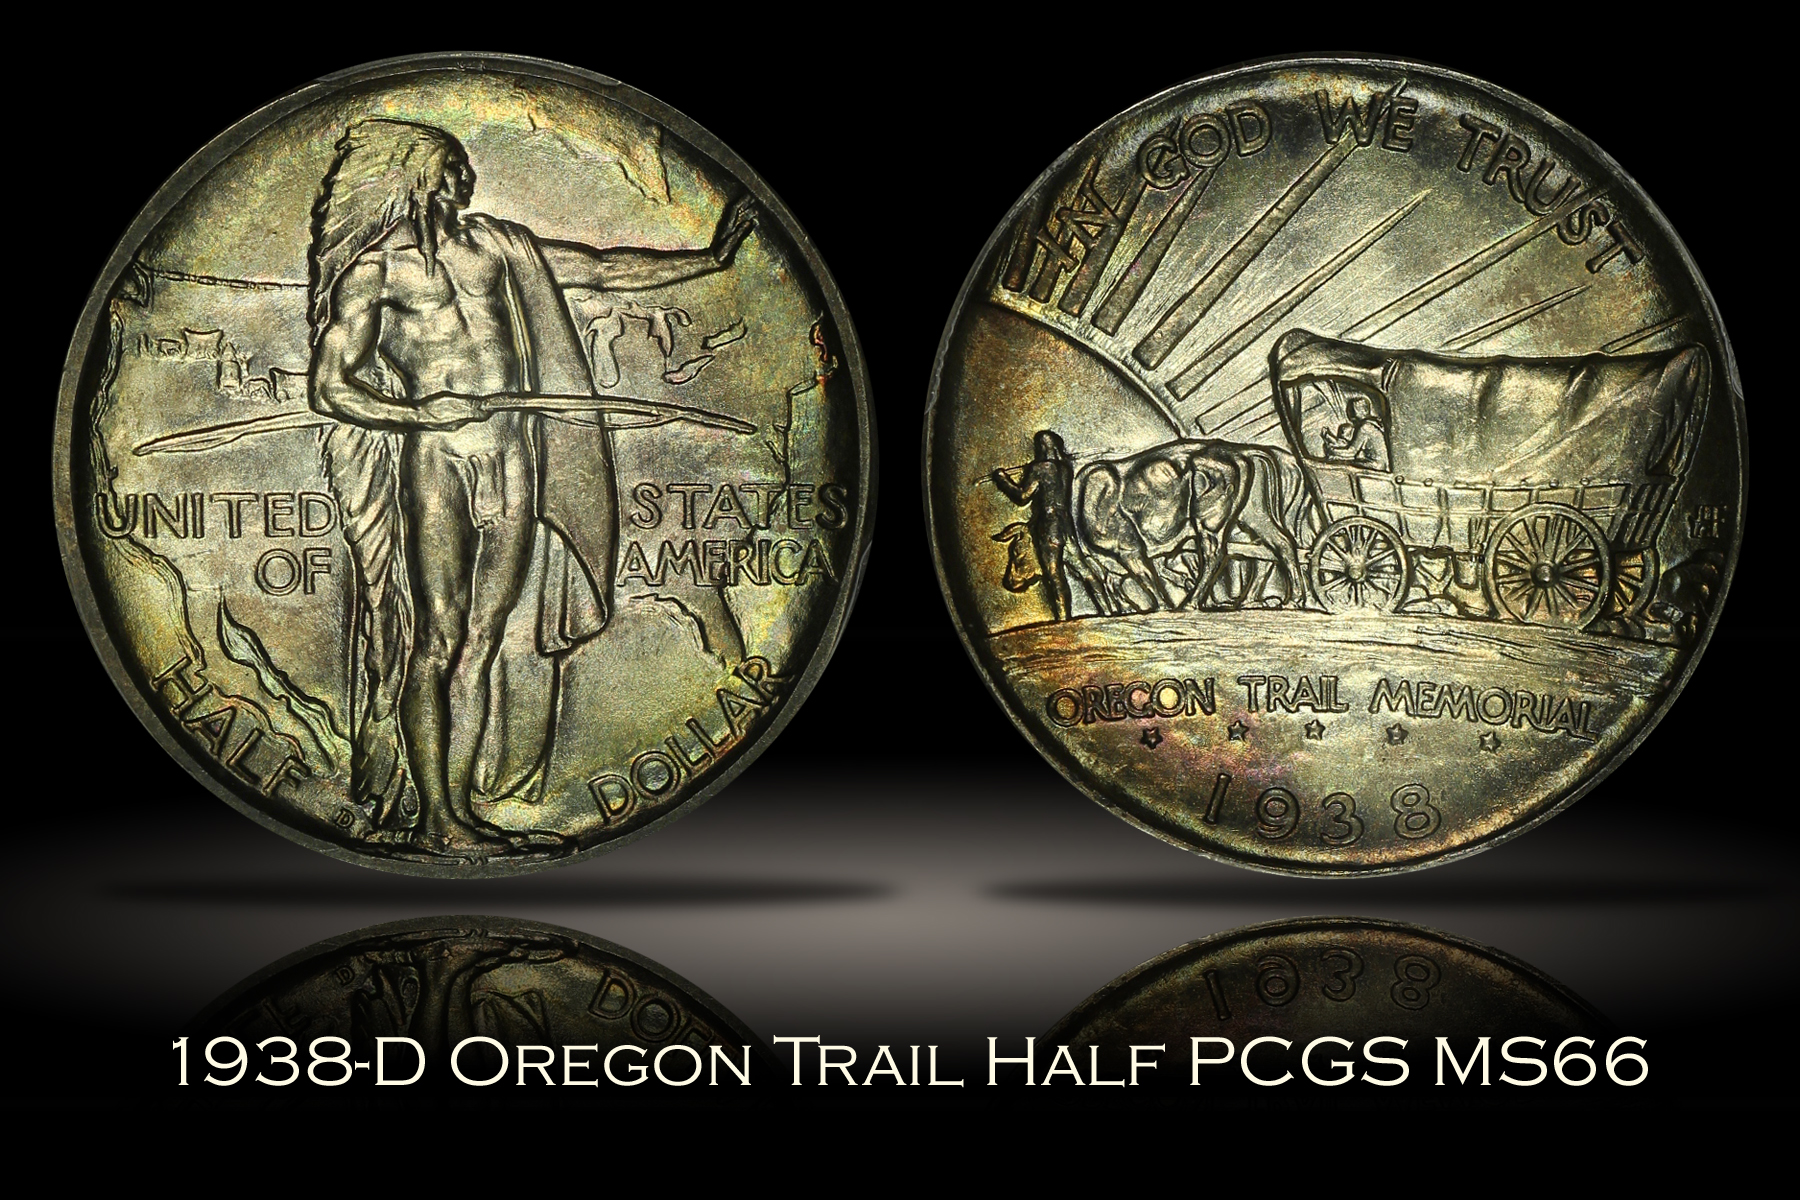 1938-D Oregon Half PCGS MS66